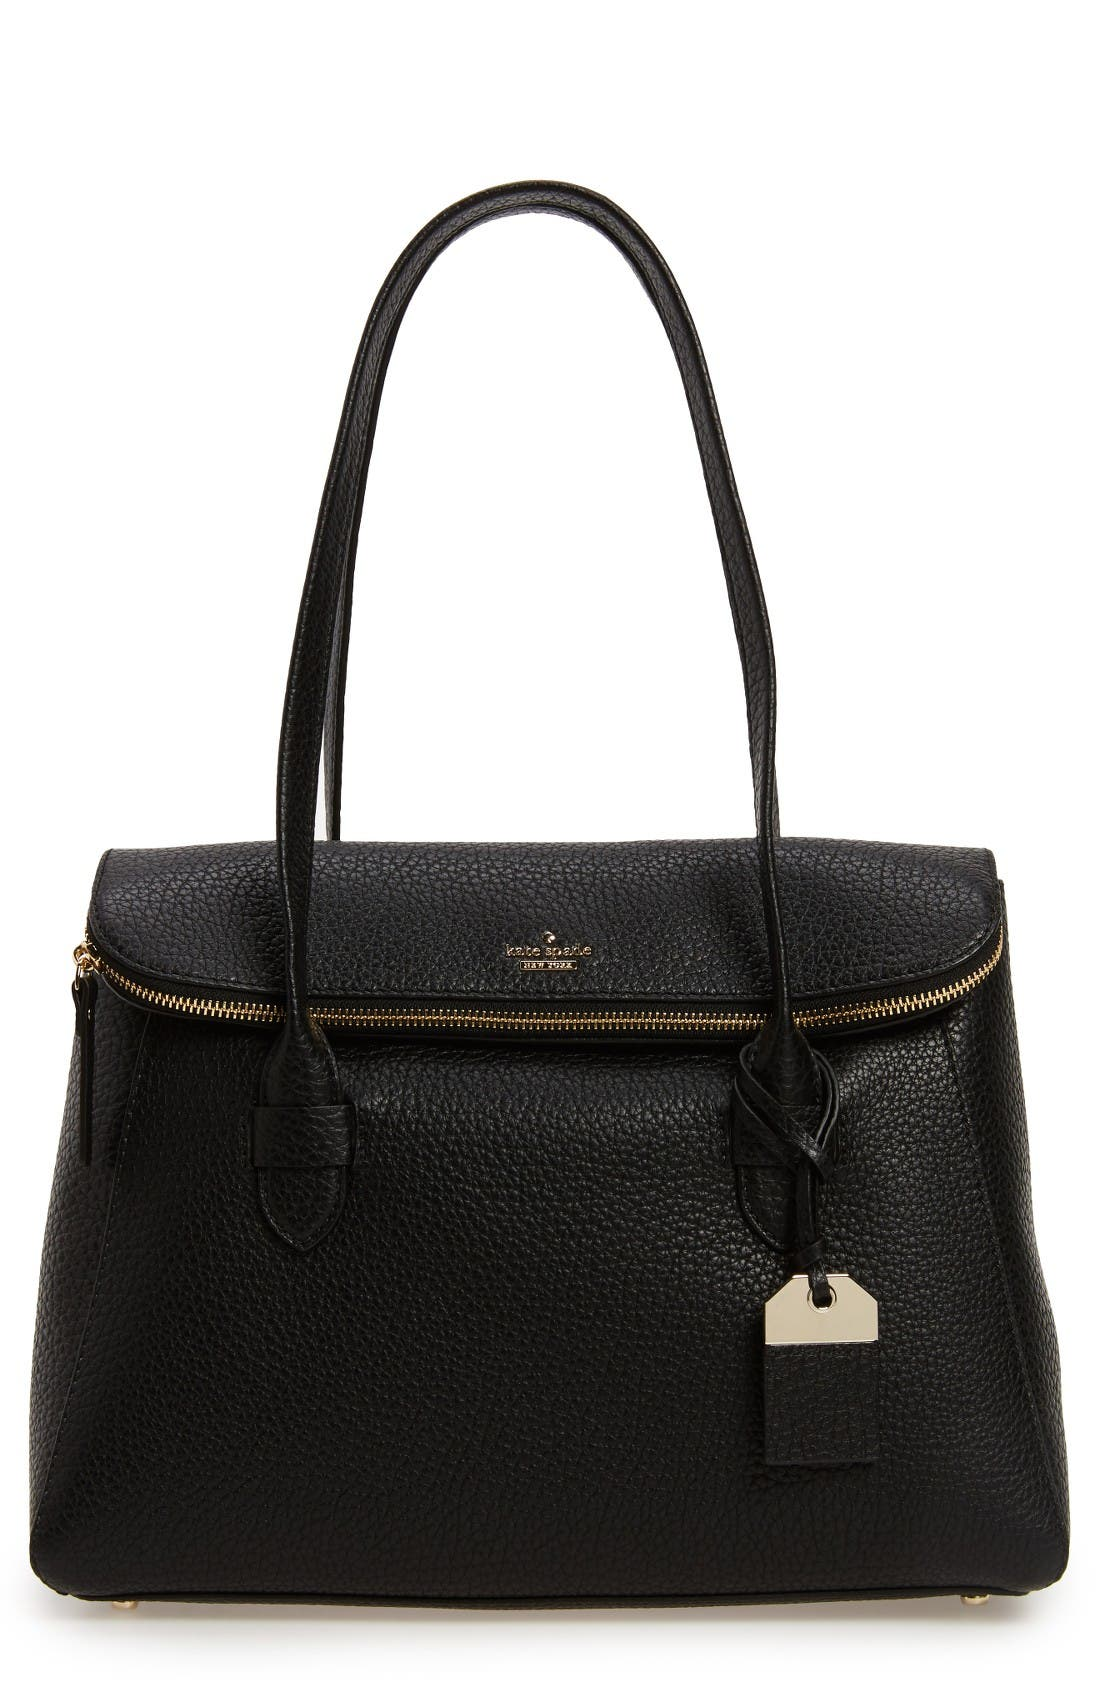 Main Image - kate spade new york carter street - laurelle leather tote